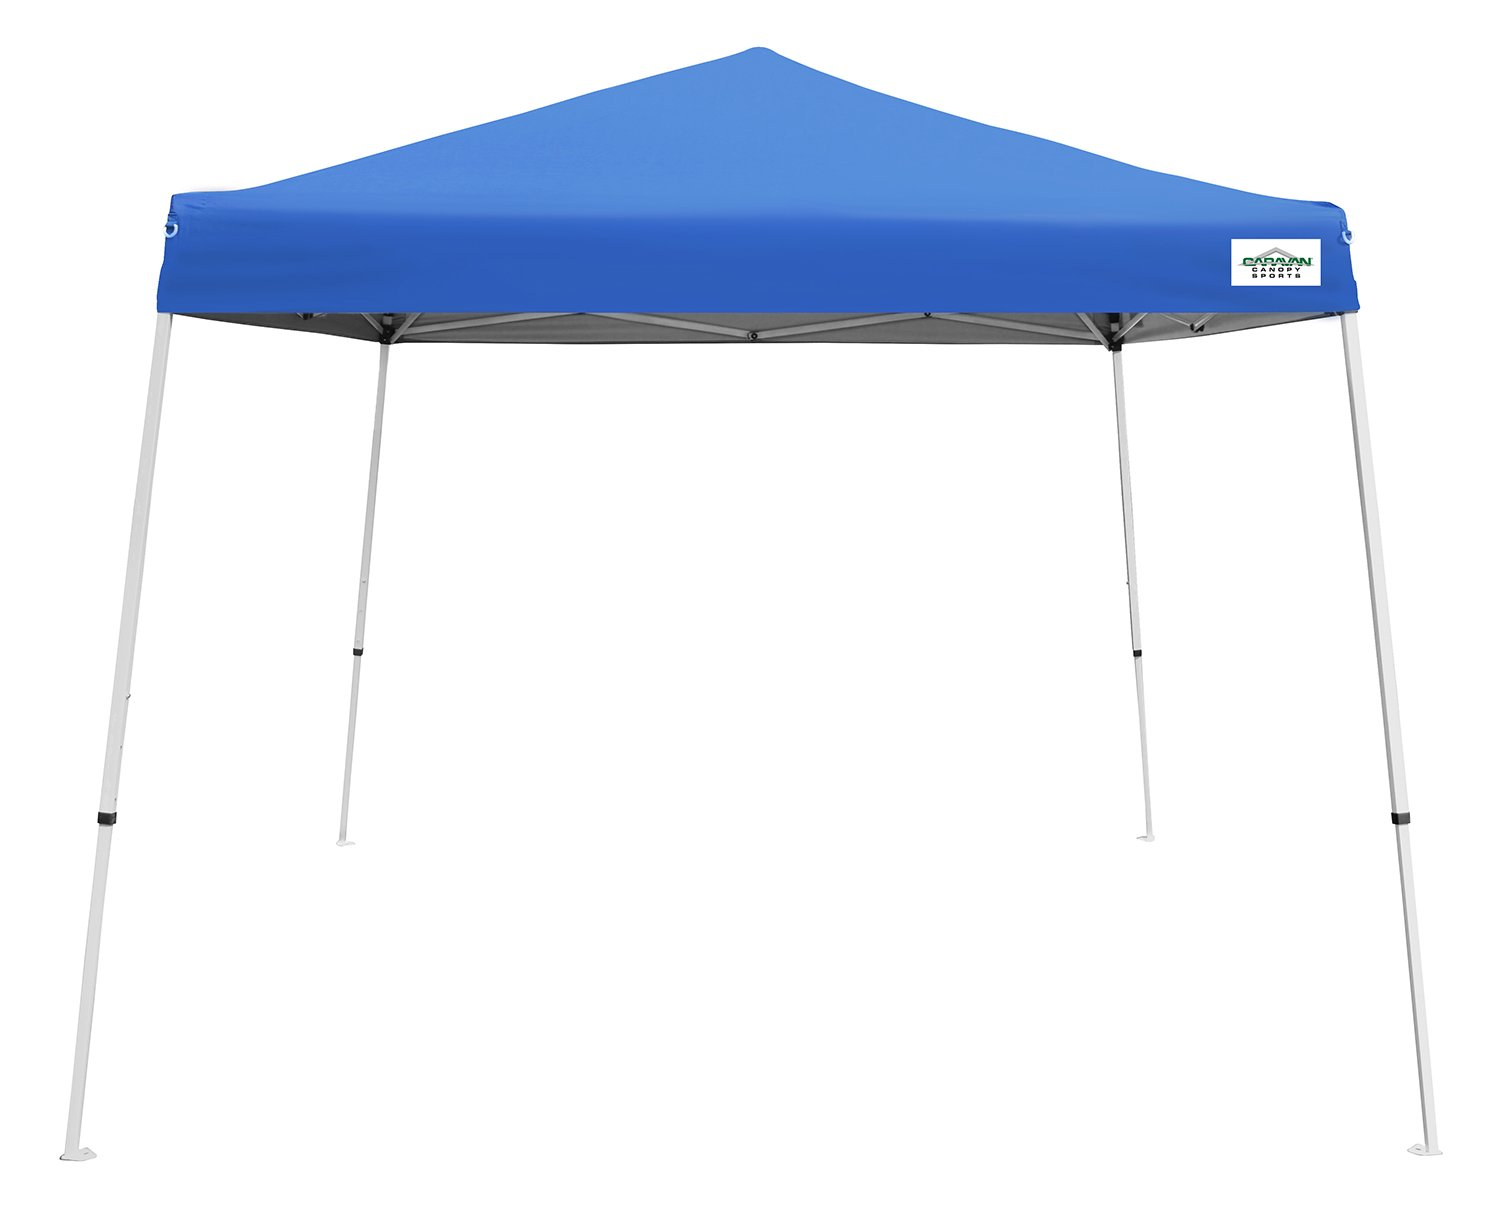 Amazon.com Caravan Canopy V-Series 2 Slant Leg - 10X10 Canopy Kit 64 Sq. Ft. of Shade Blue Garden u0026 Outdoor  sc 1 st  Amazon.com & Amazon.com: Caravan Canopy V-Series 2 Slant Leg - 10X10 Canopy Kit ...